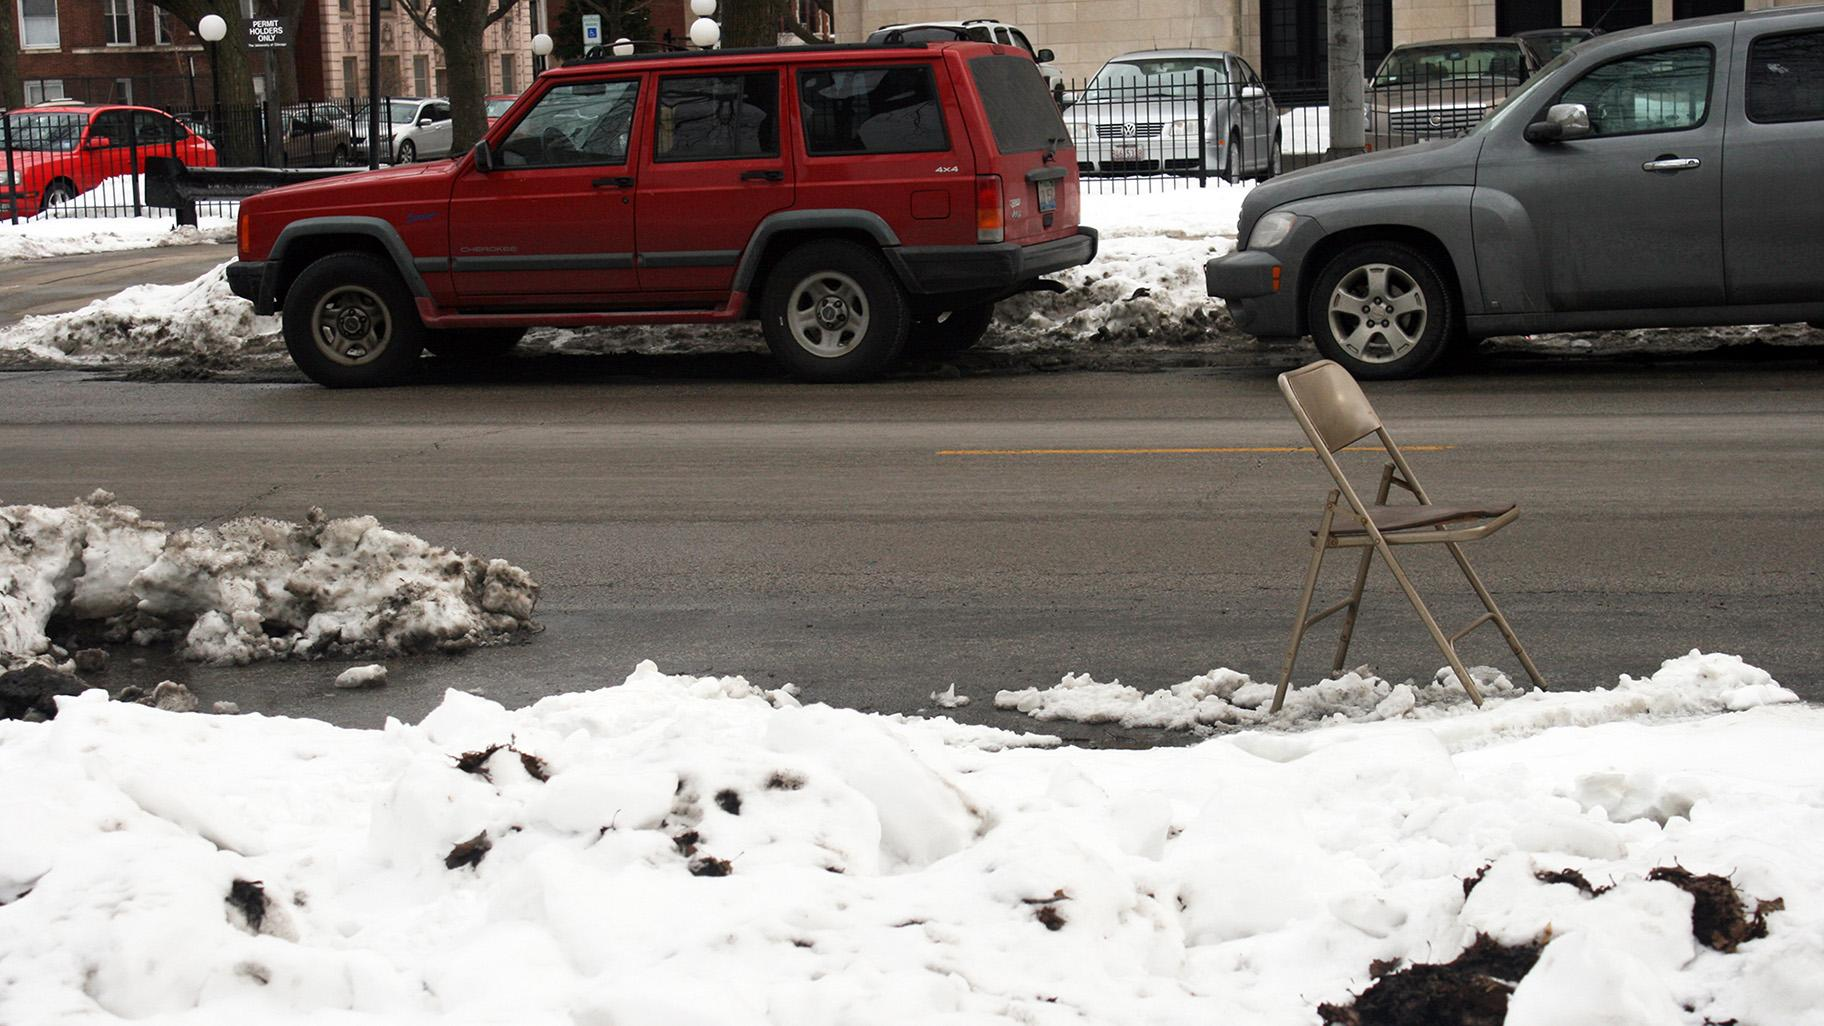 A folding chair holds a parking spot cleared of snow on Feb. 12, 2011 in Chicago. (Quinn Dombrowski / Flickr)